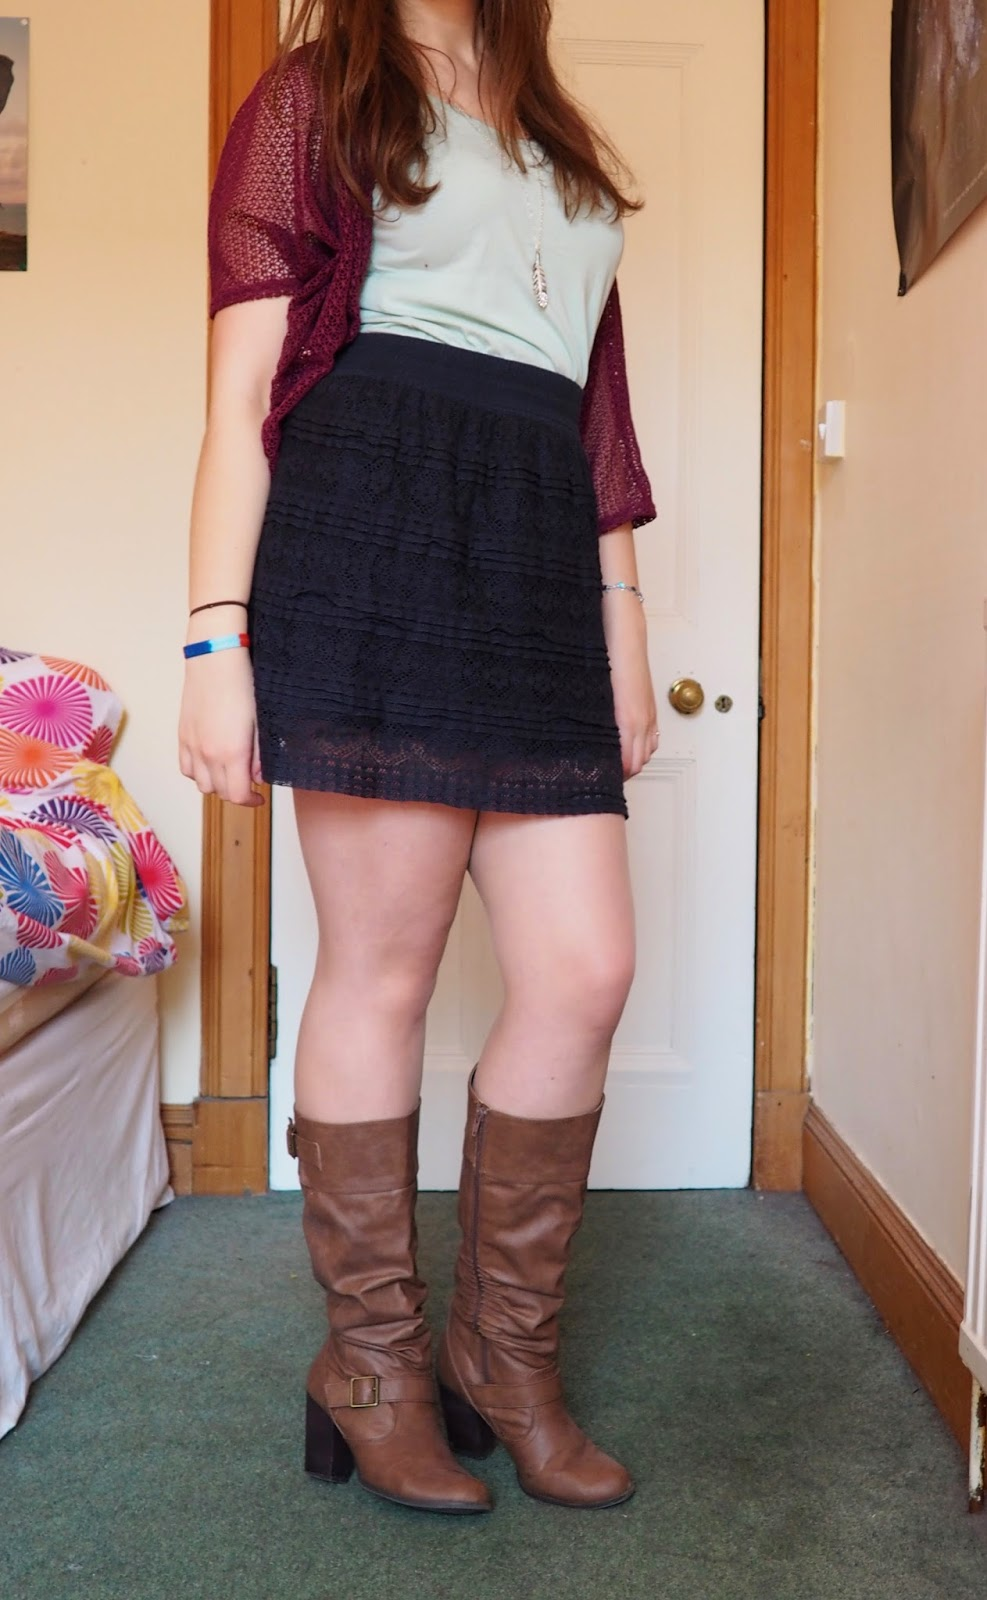 Light Layers outfit | purple-pink knit shrug, green vest, dark blue lace skirt, tall brown leather boots